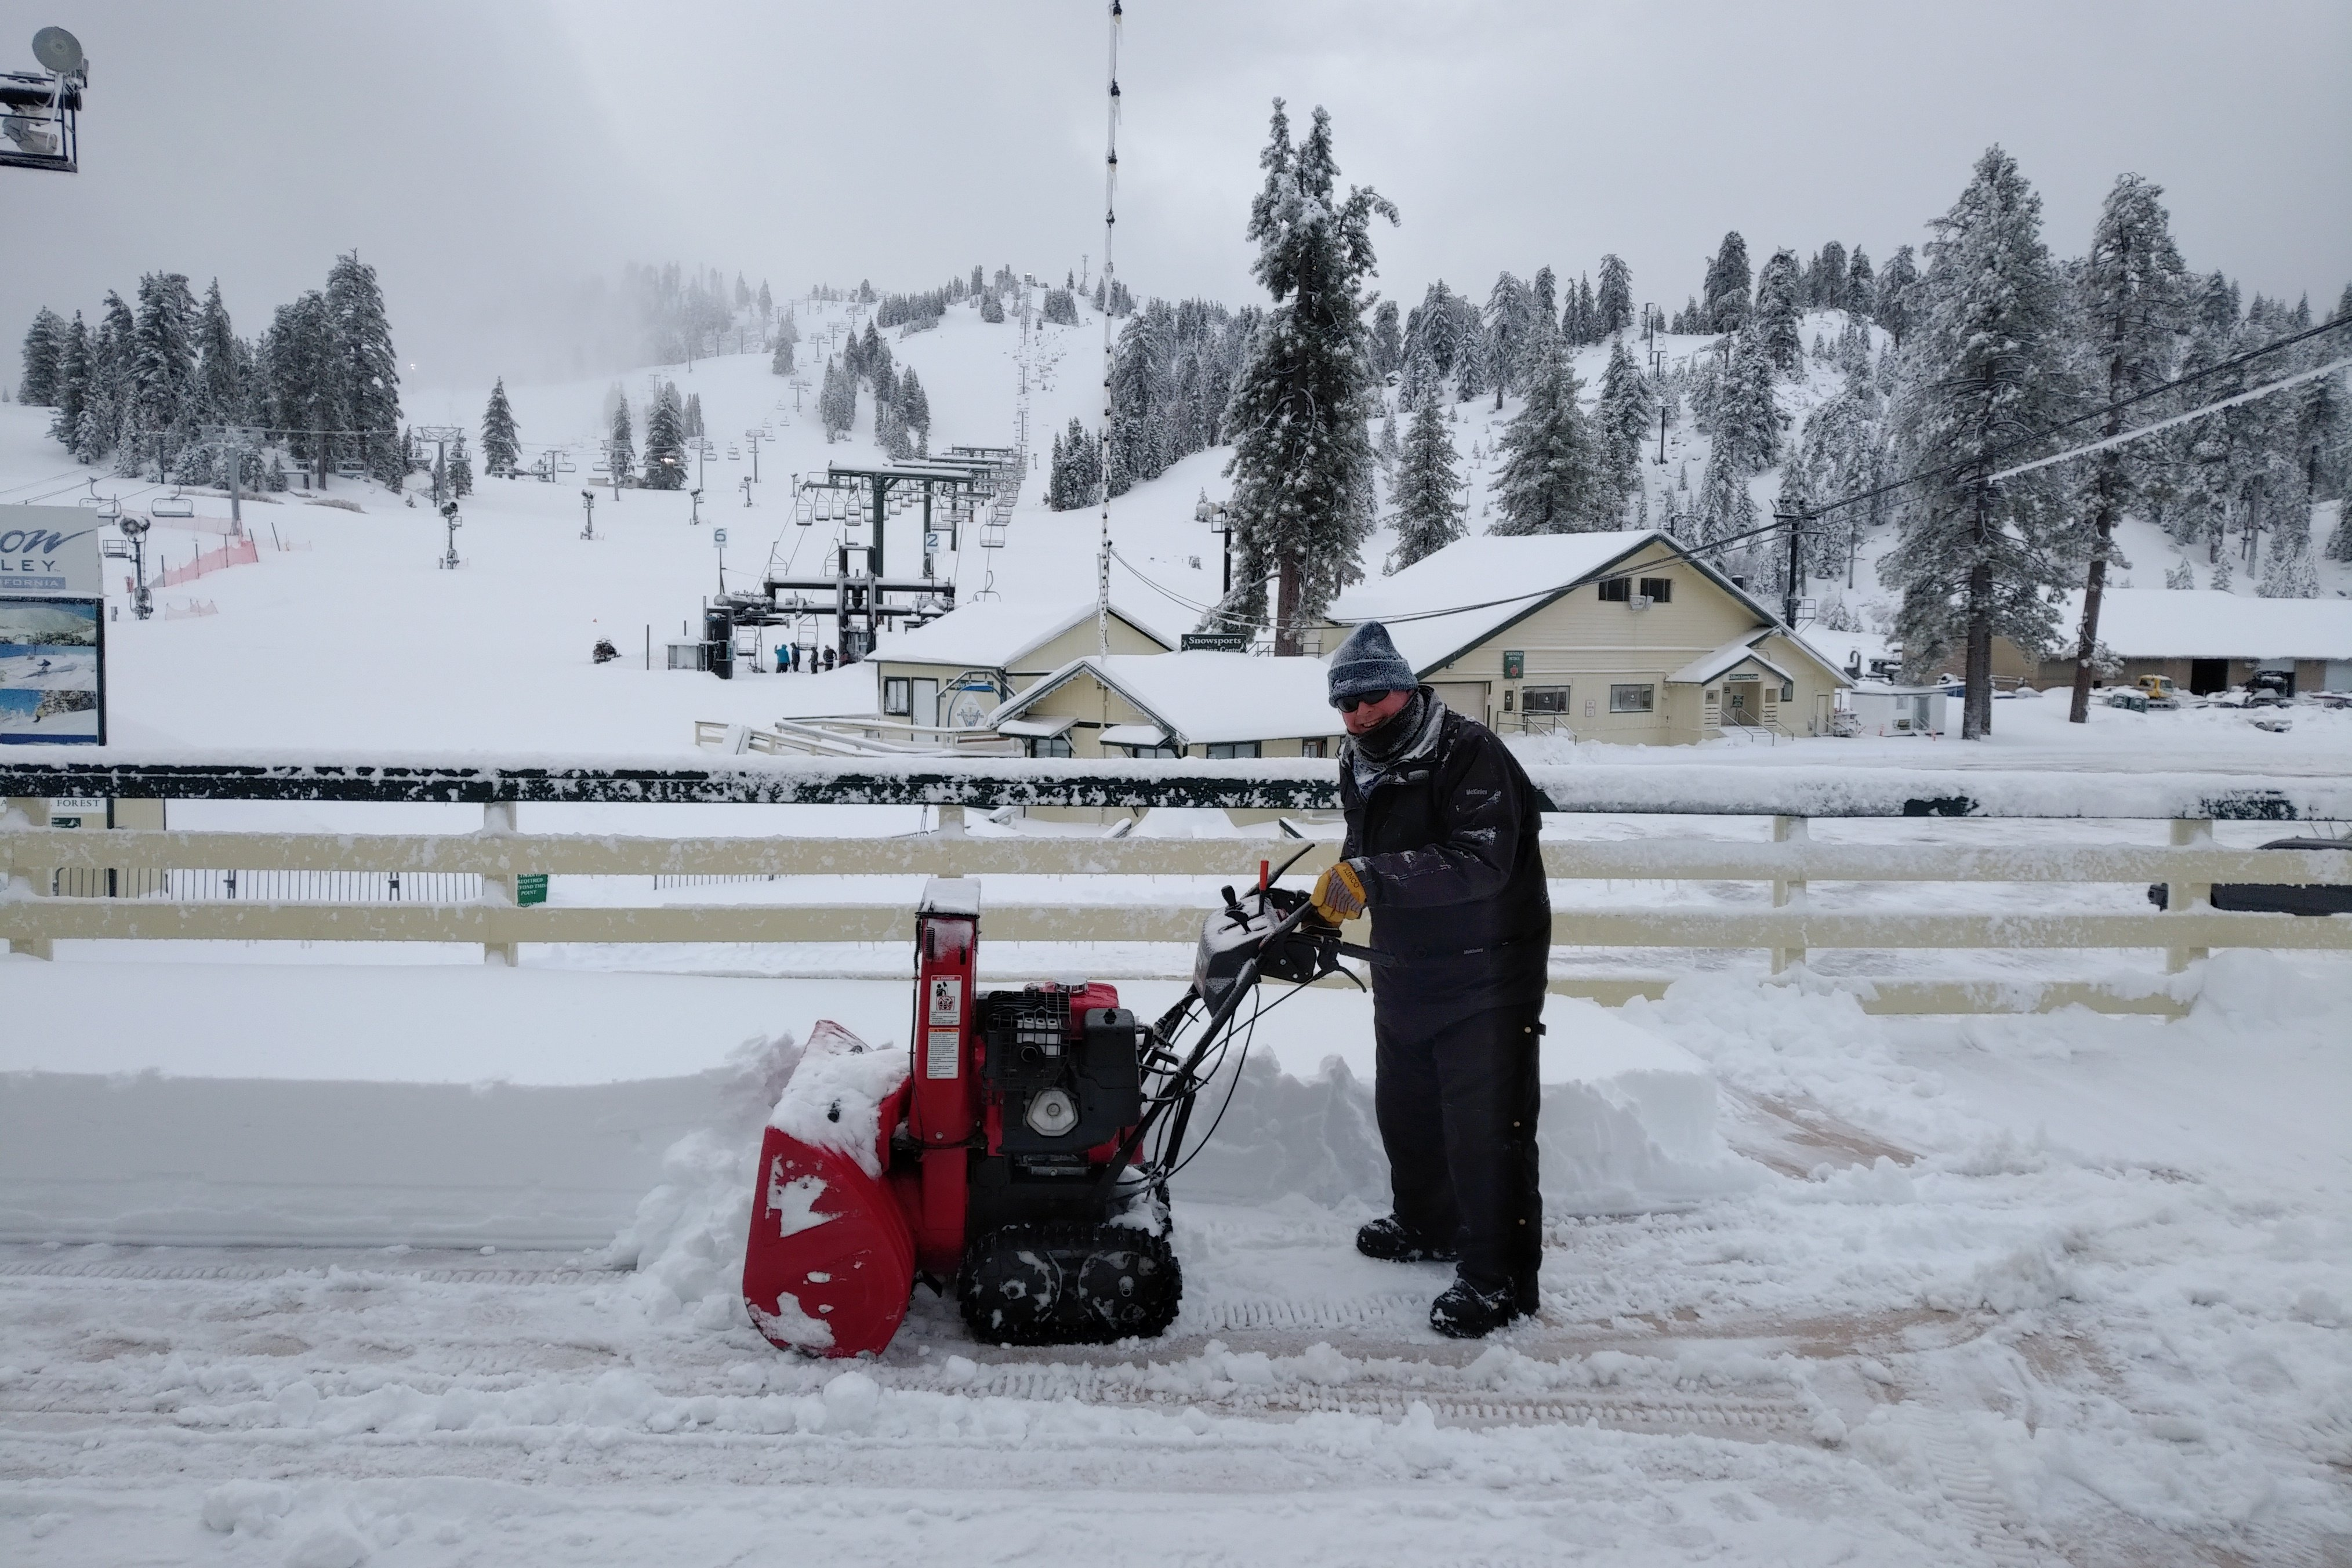 Smiling Snow Valley employee pushing snow blower over deck